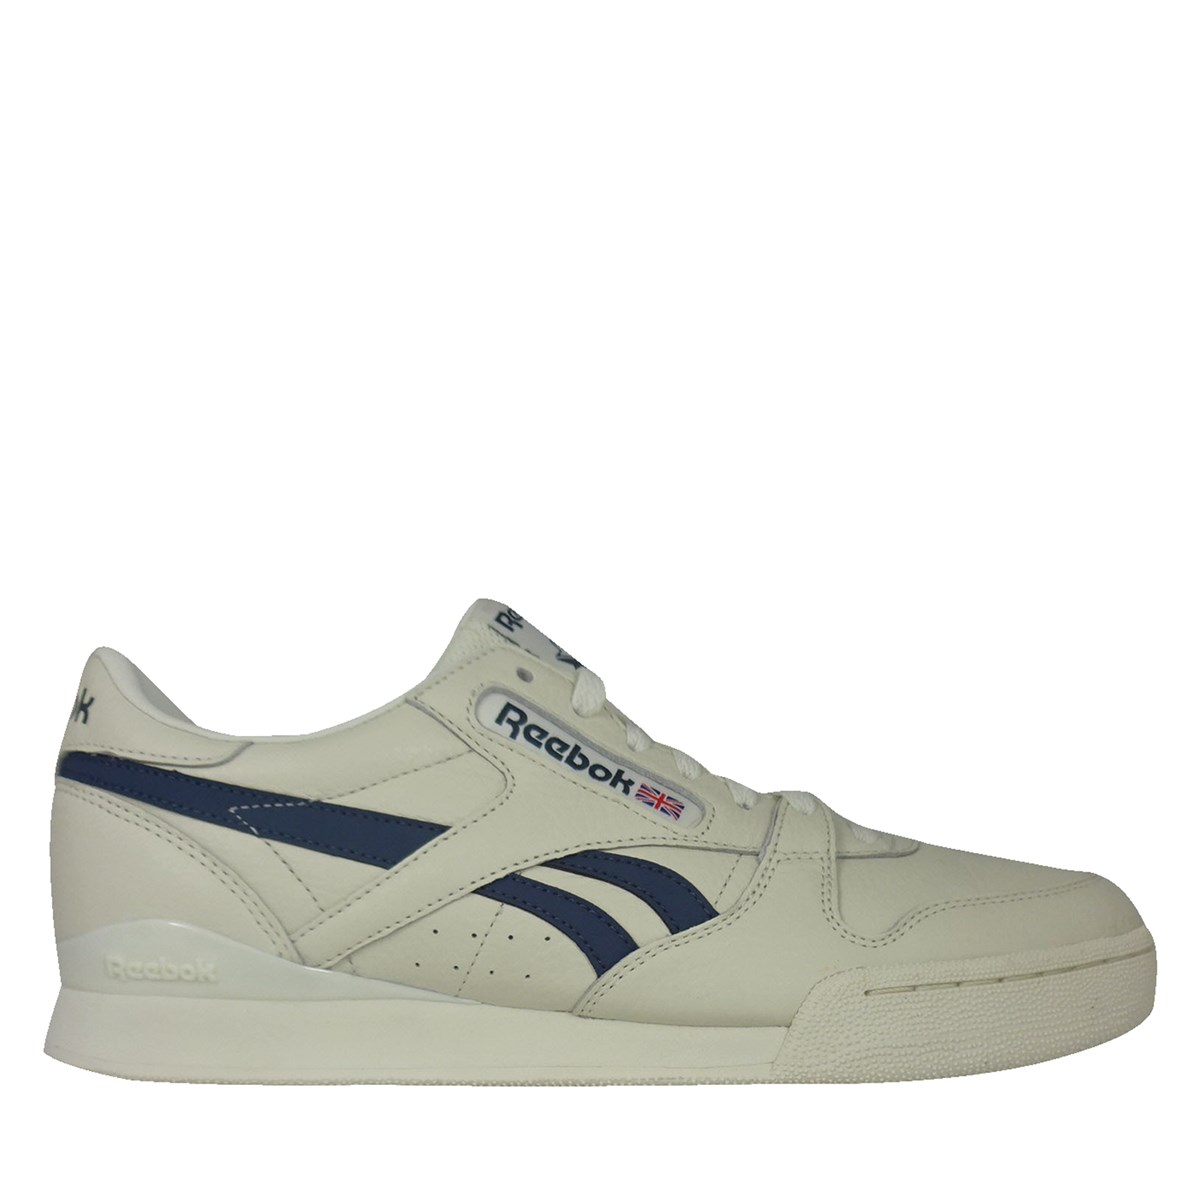 Men's Phase Pro Vintage Sneaker in Classic White